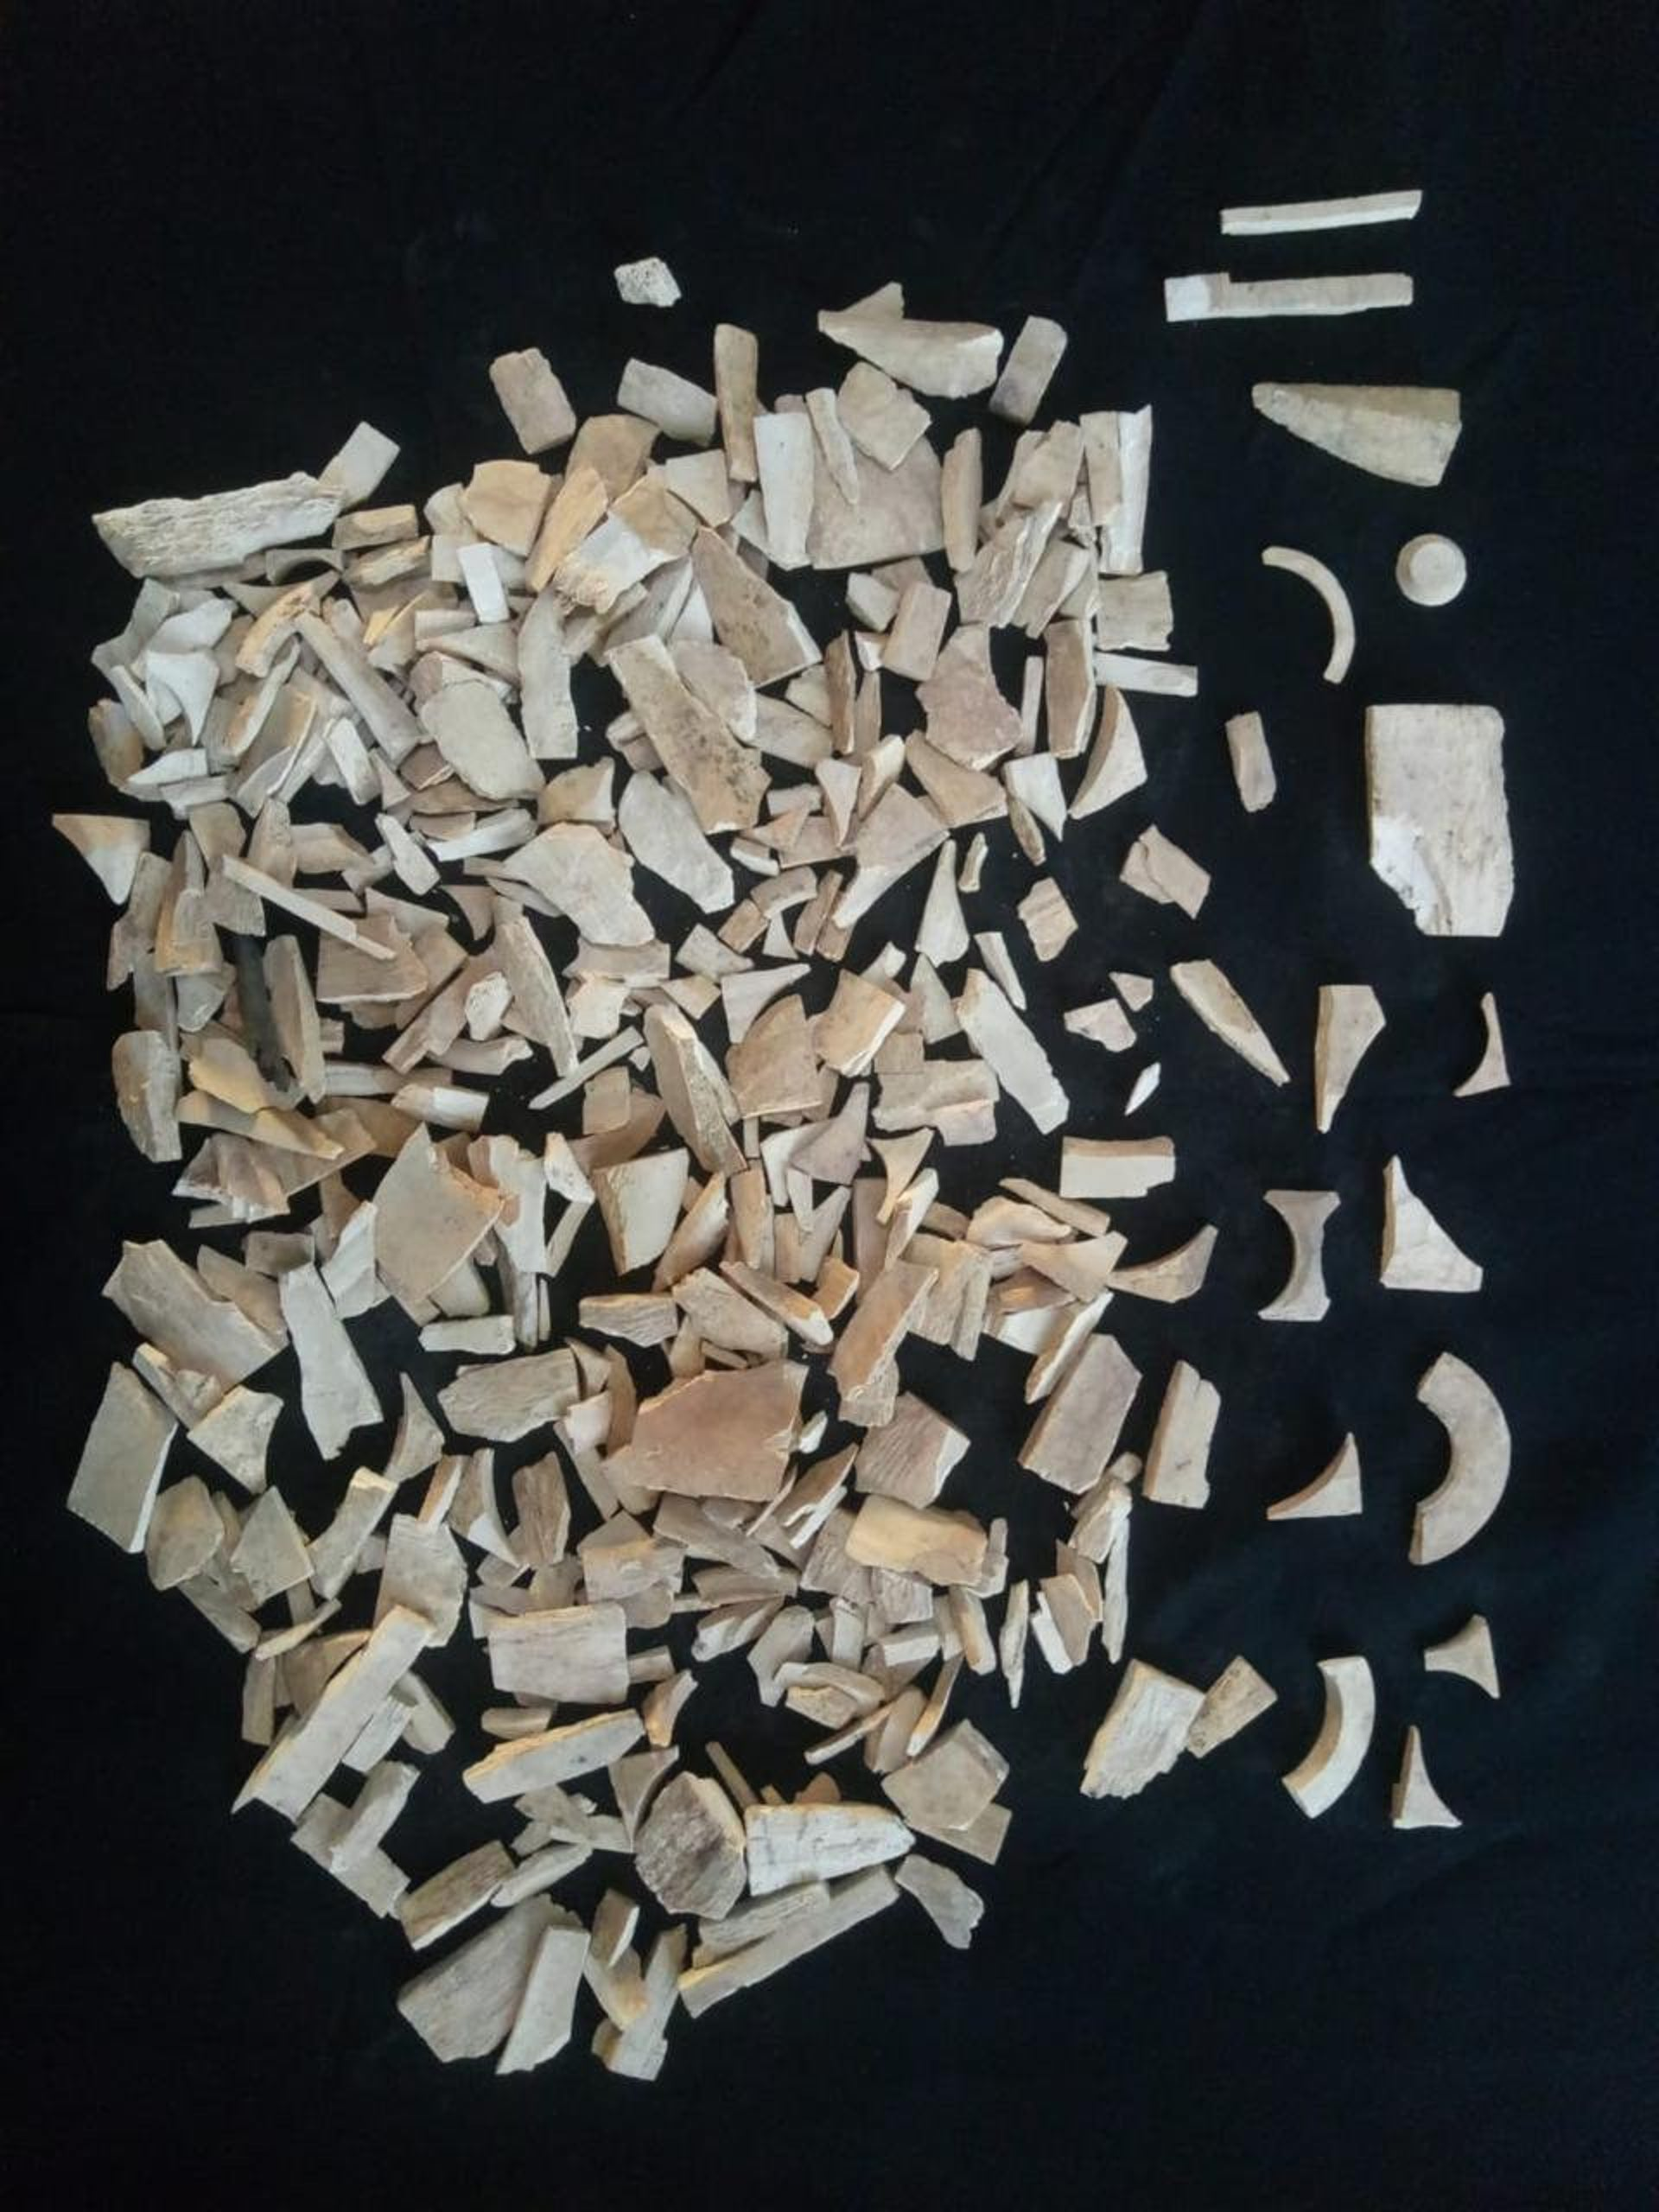 Fragments of ivory, evidence of a vast ivory industry in Islamic-period Bhanbhore